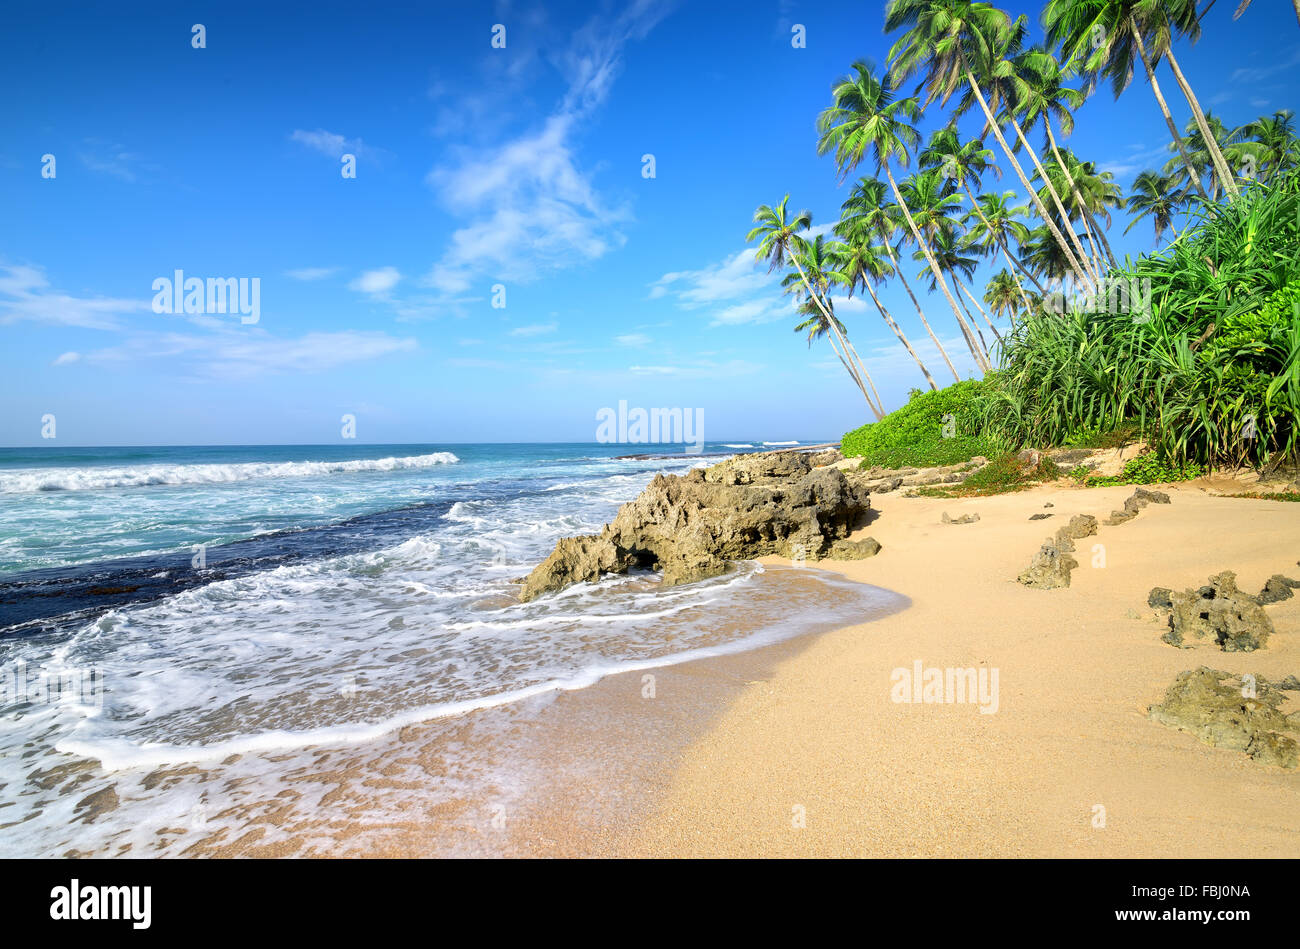 Green palm trees on the beach of Gala - Stock Image